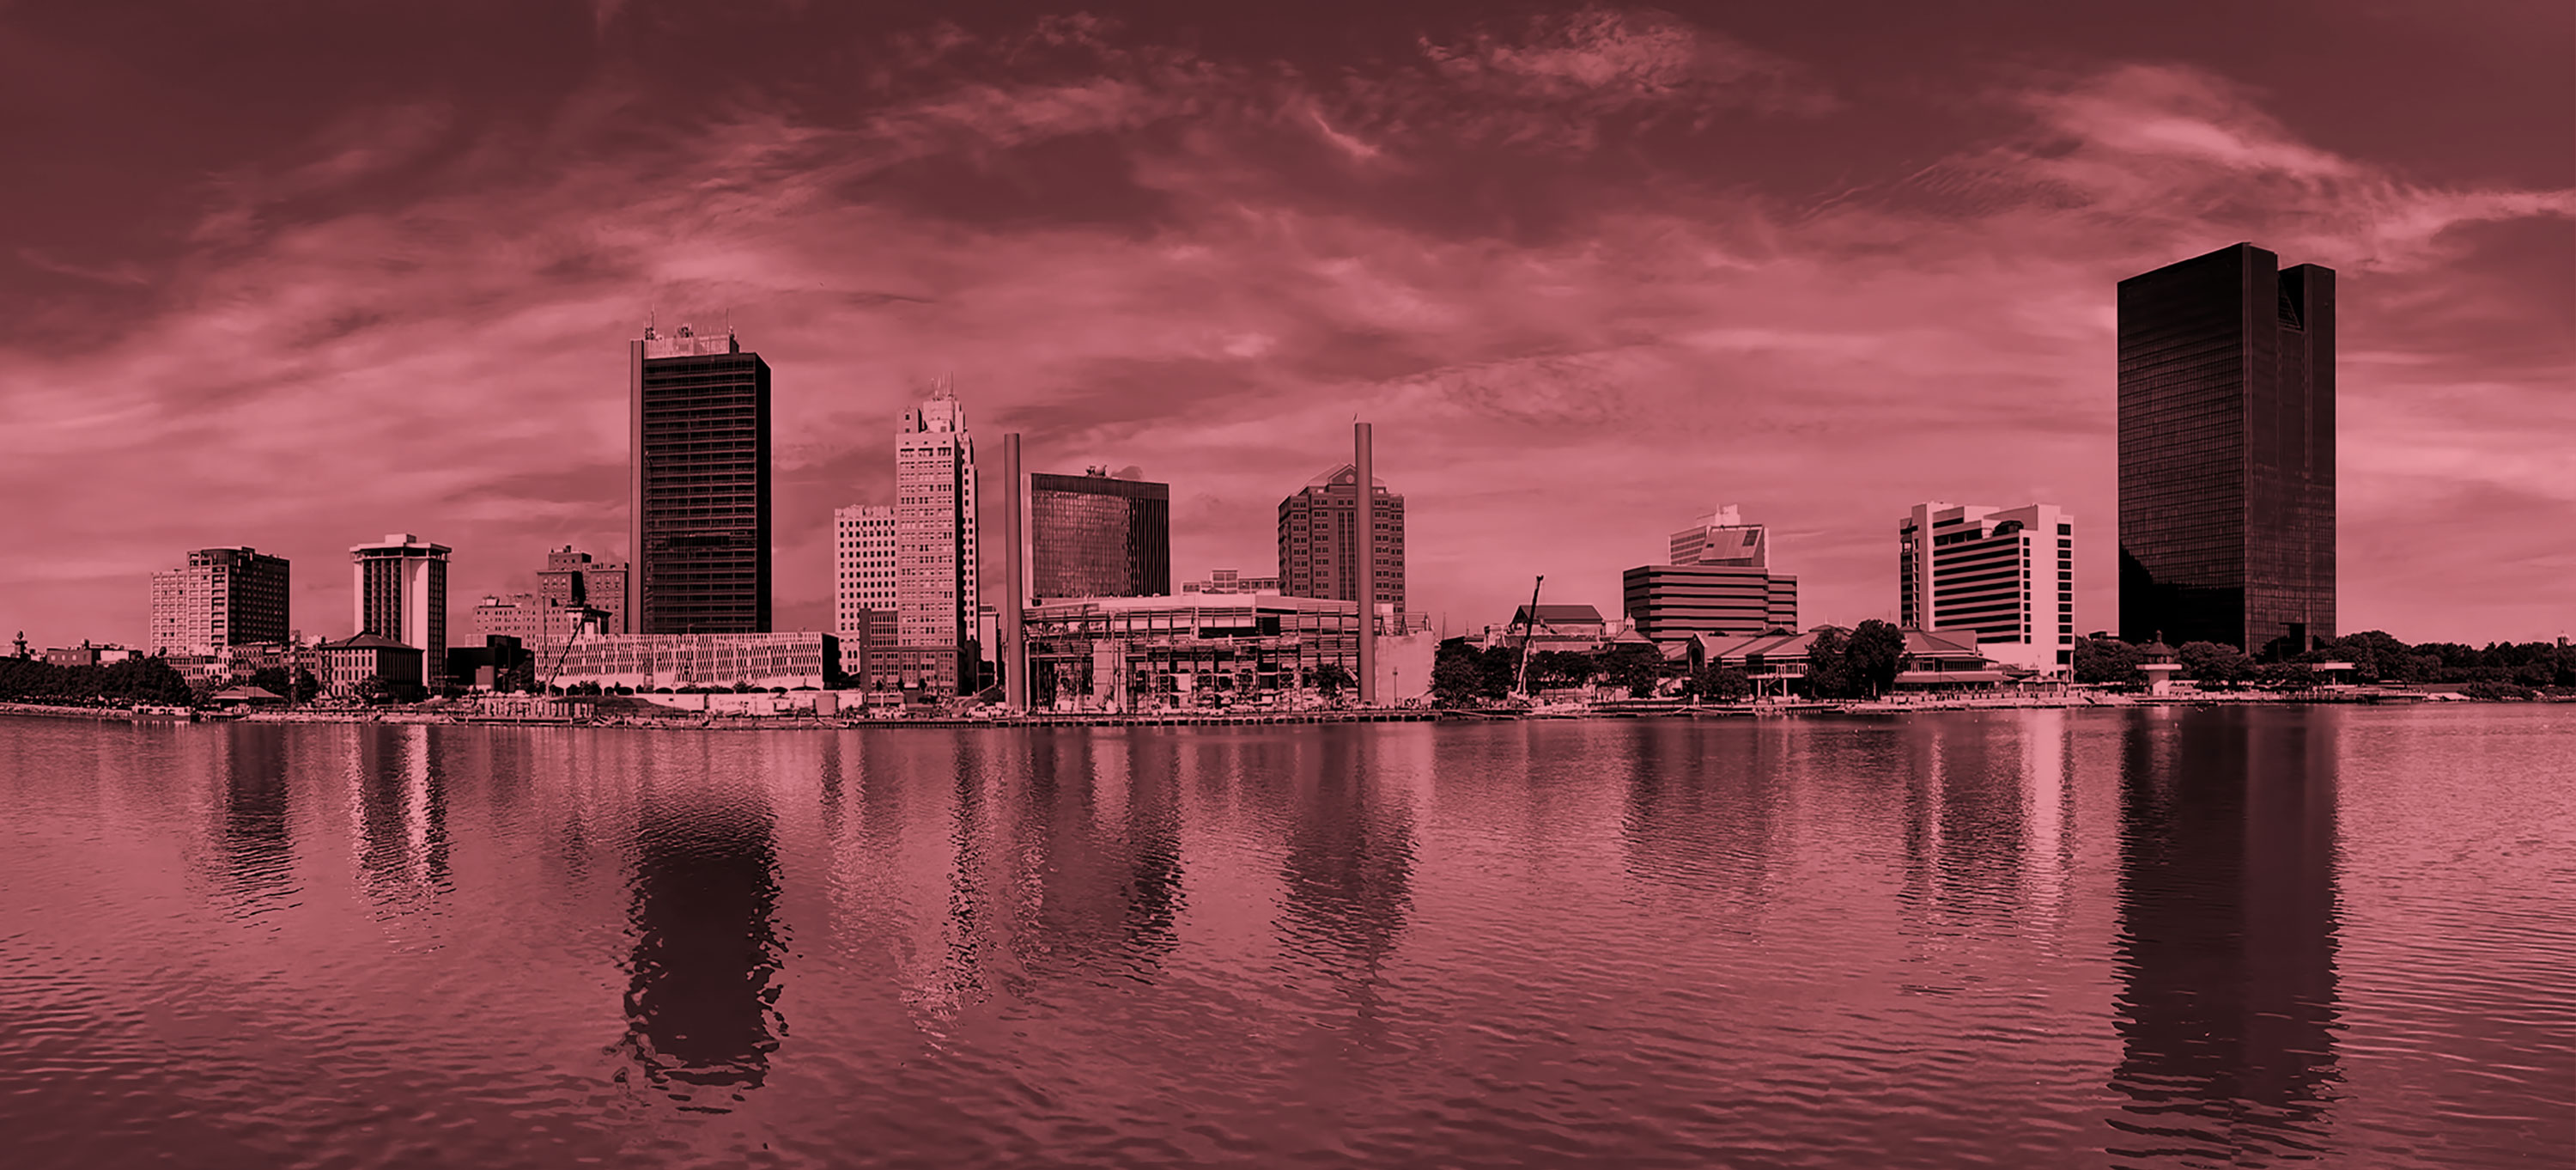 Leading change for over 80 years in Toledo